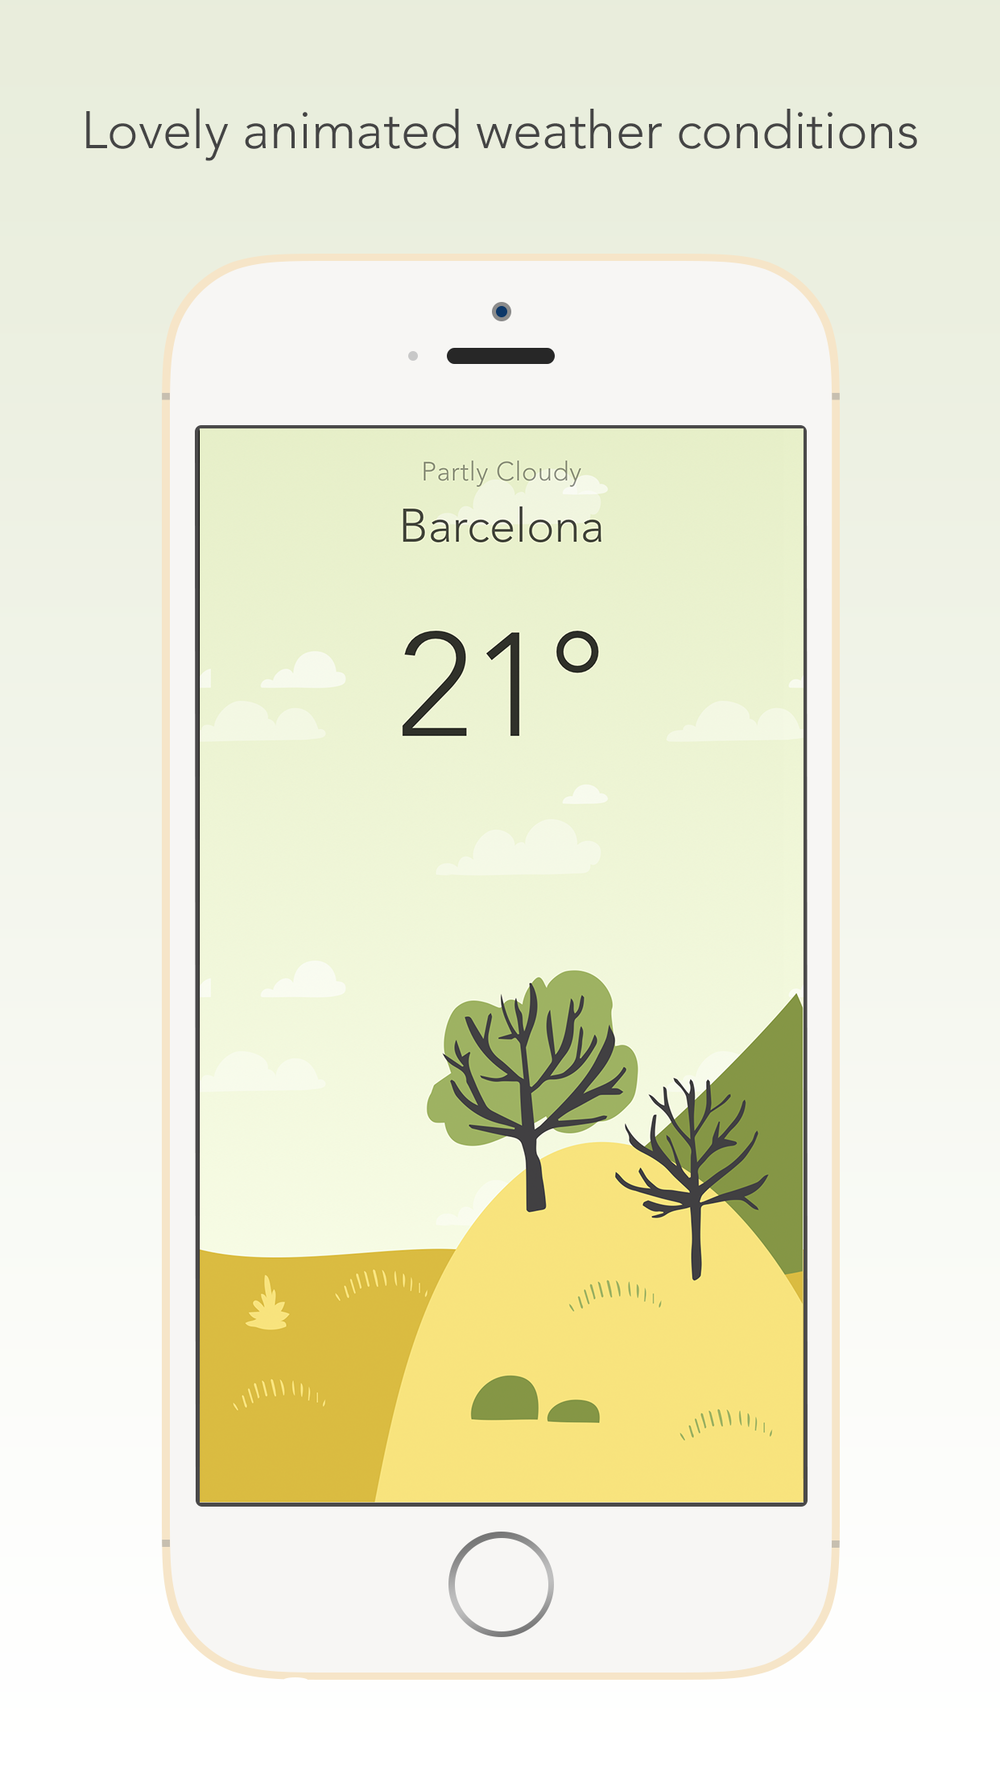 4 - WildWeather - Animated weather.png